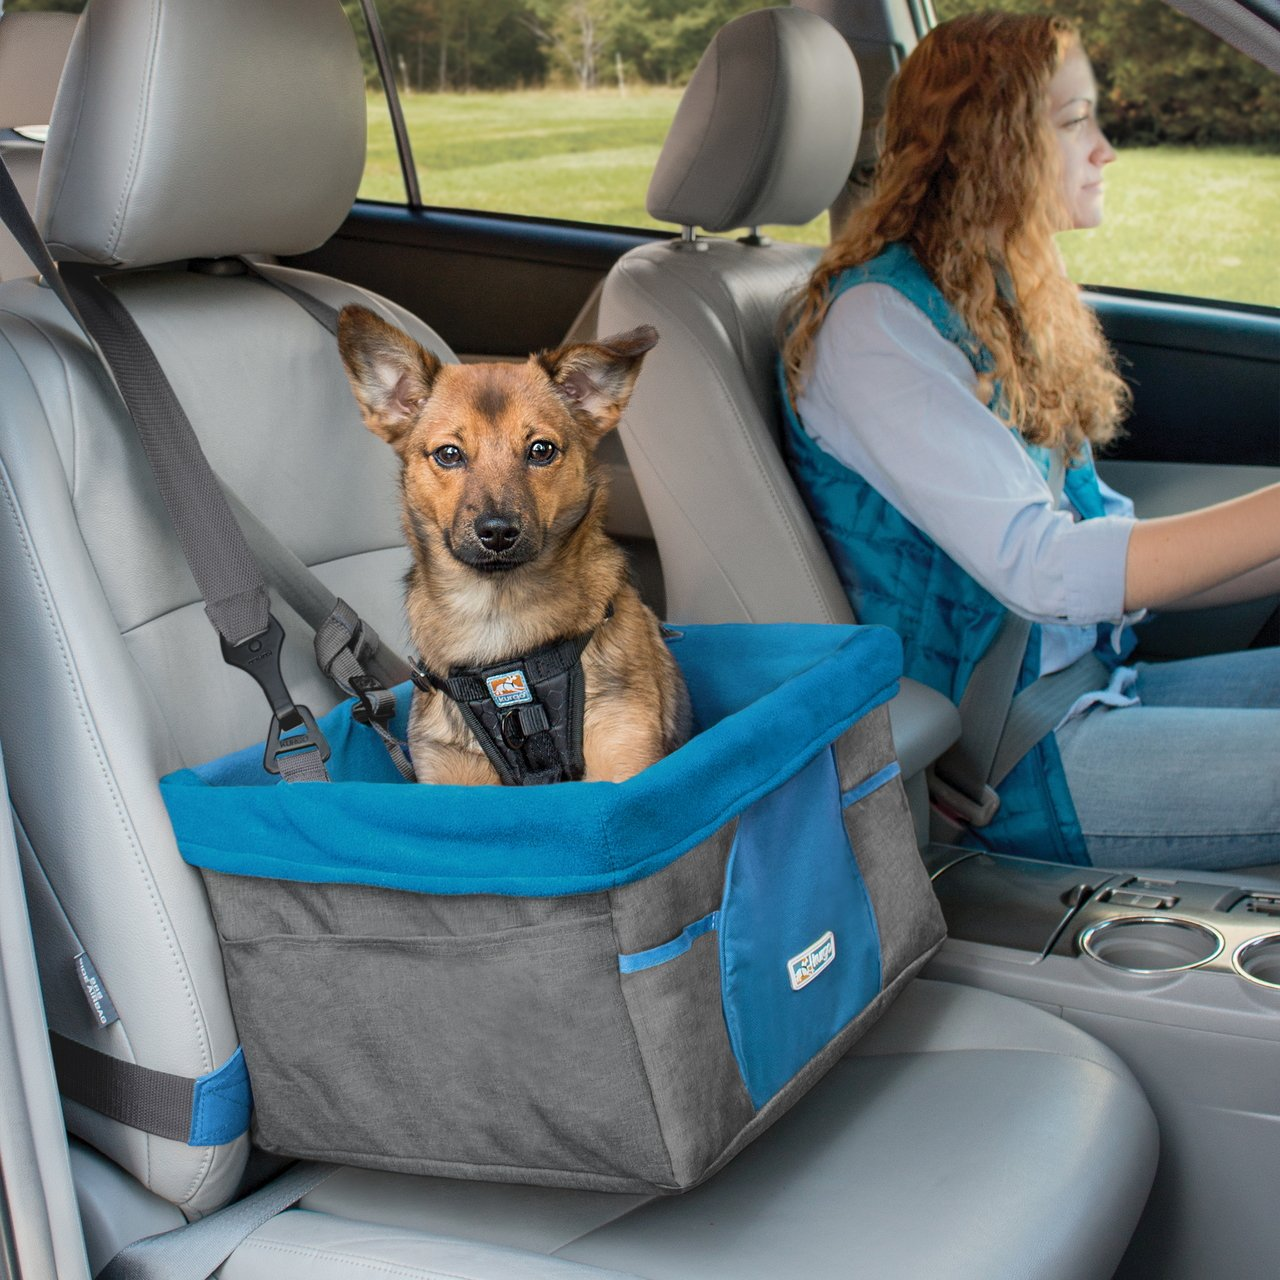 Kurgo Heather Dog Booster Seat for Cars with Seat Belt Tether, Charcoal - Lifetime Warranty 12D x 16W x 8H; holds dogs up to 30 pounds